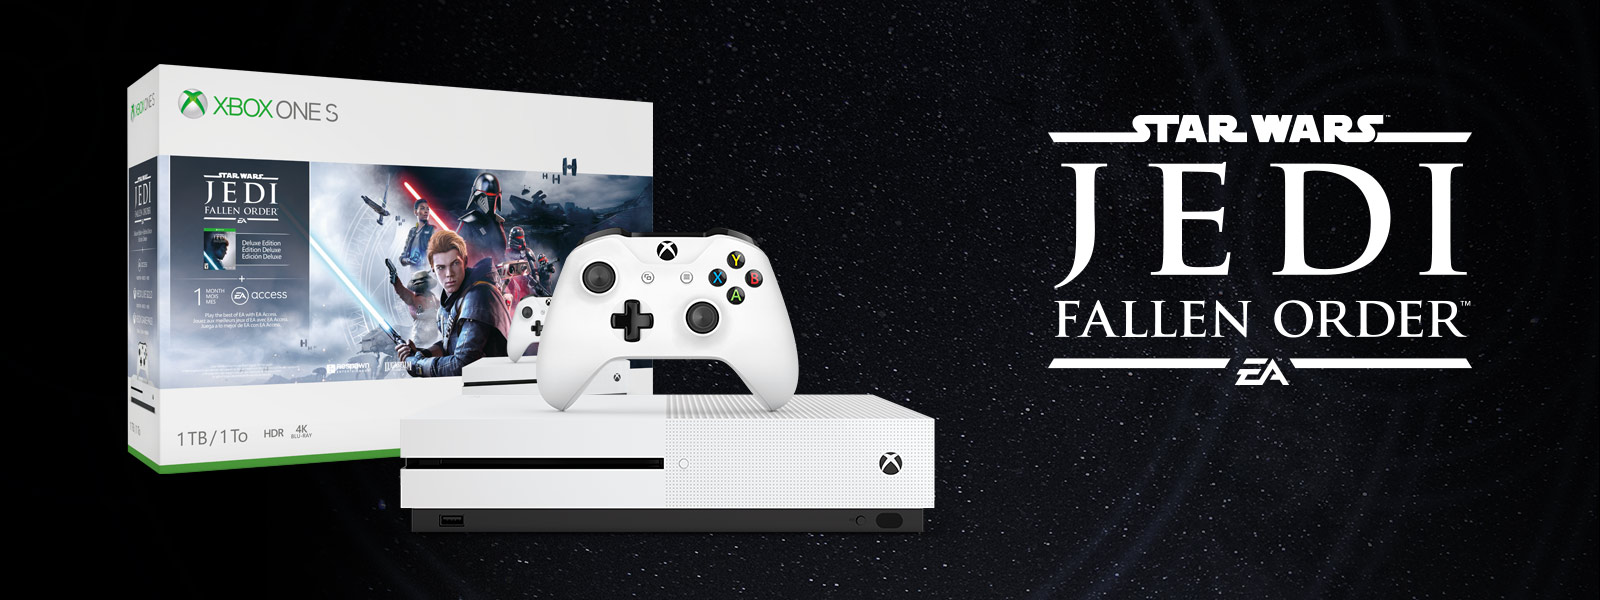 Xbox One S Star Wars Jedi: Fallen Order bundle art in front of a starry night sky